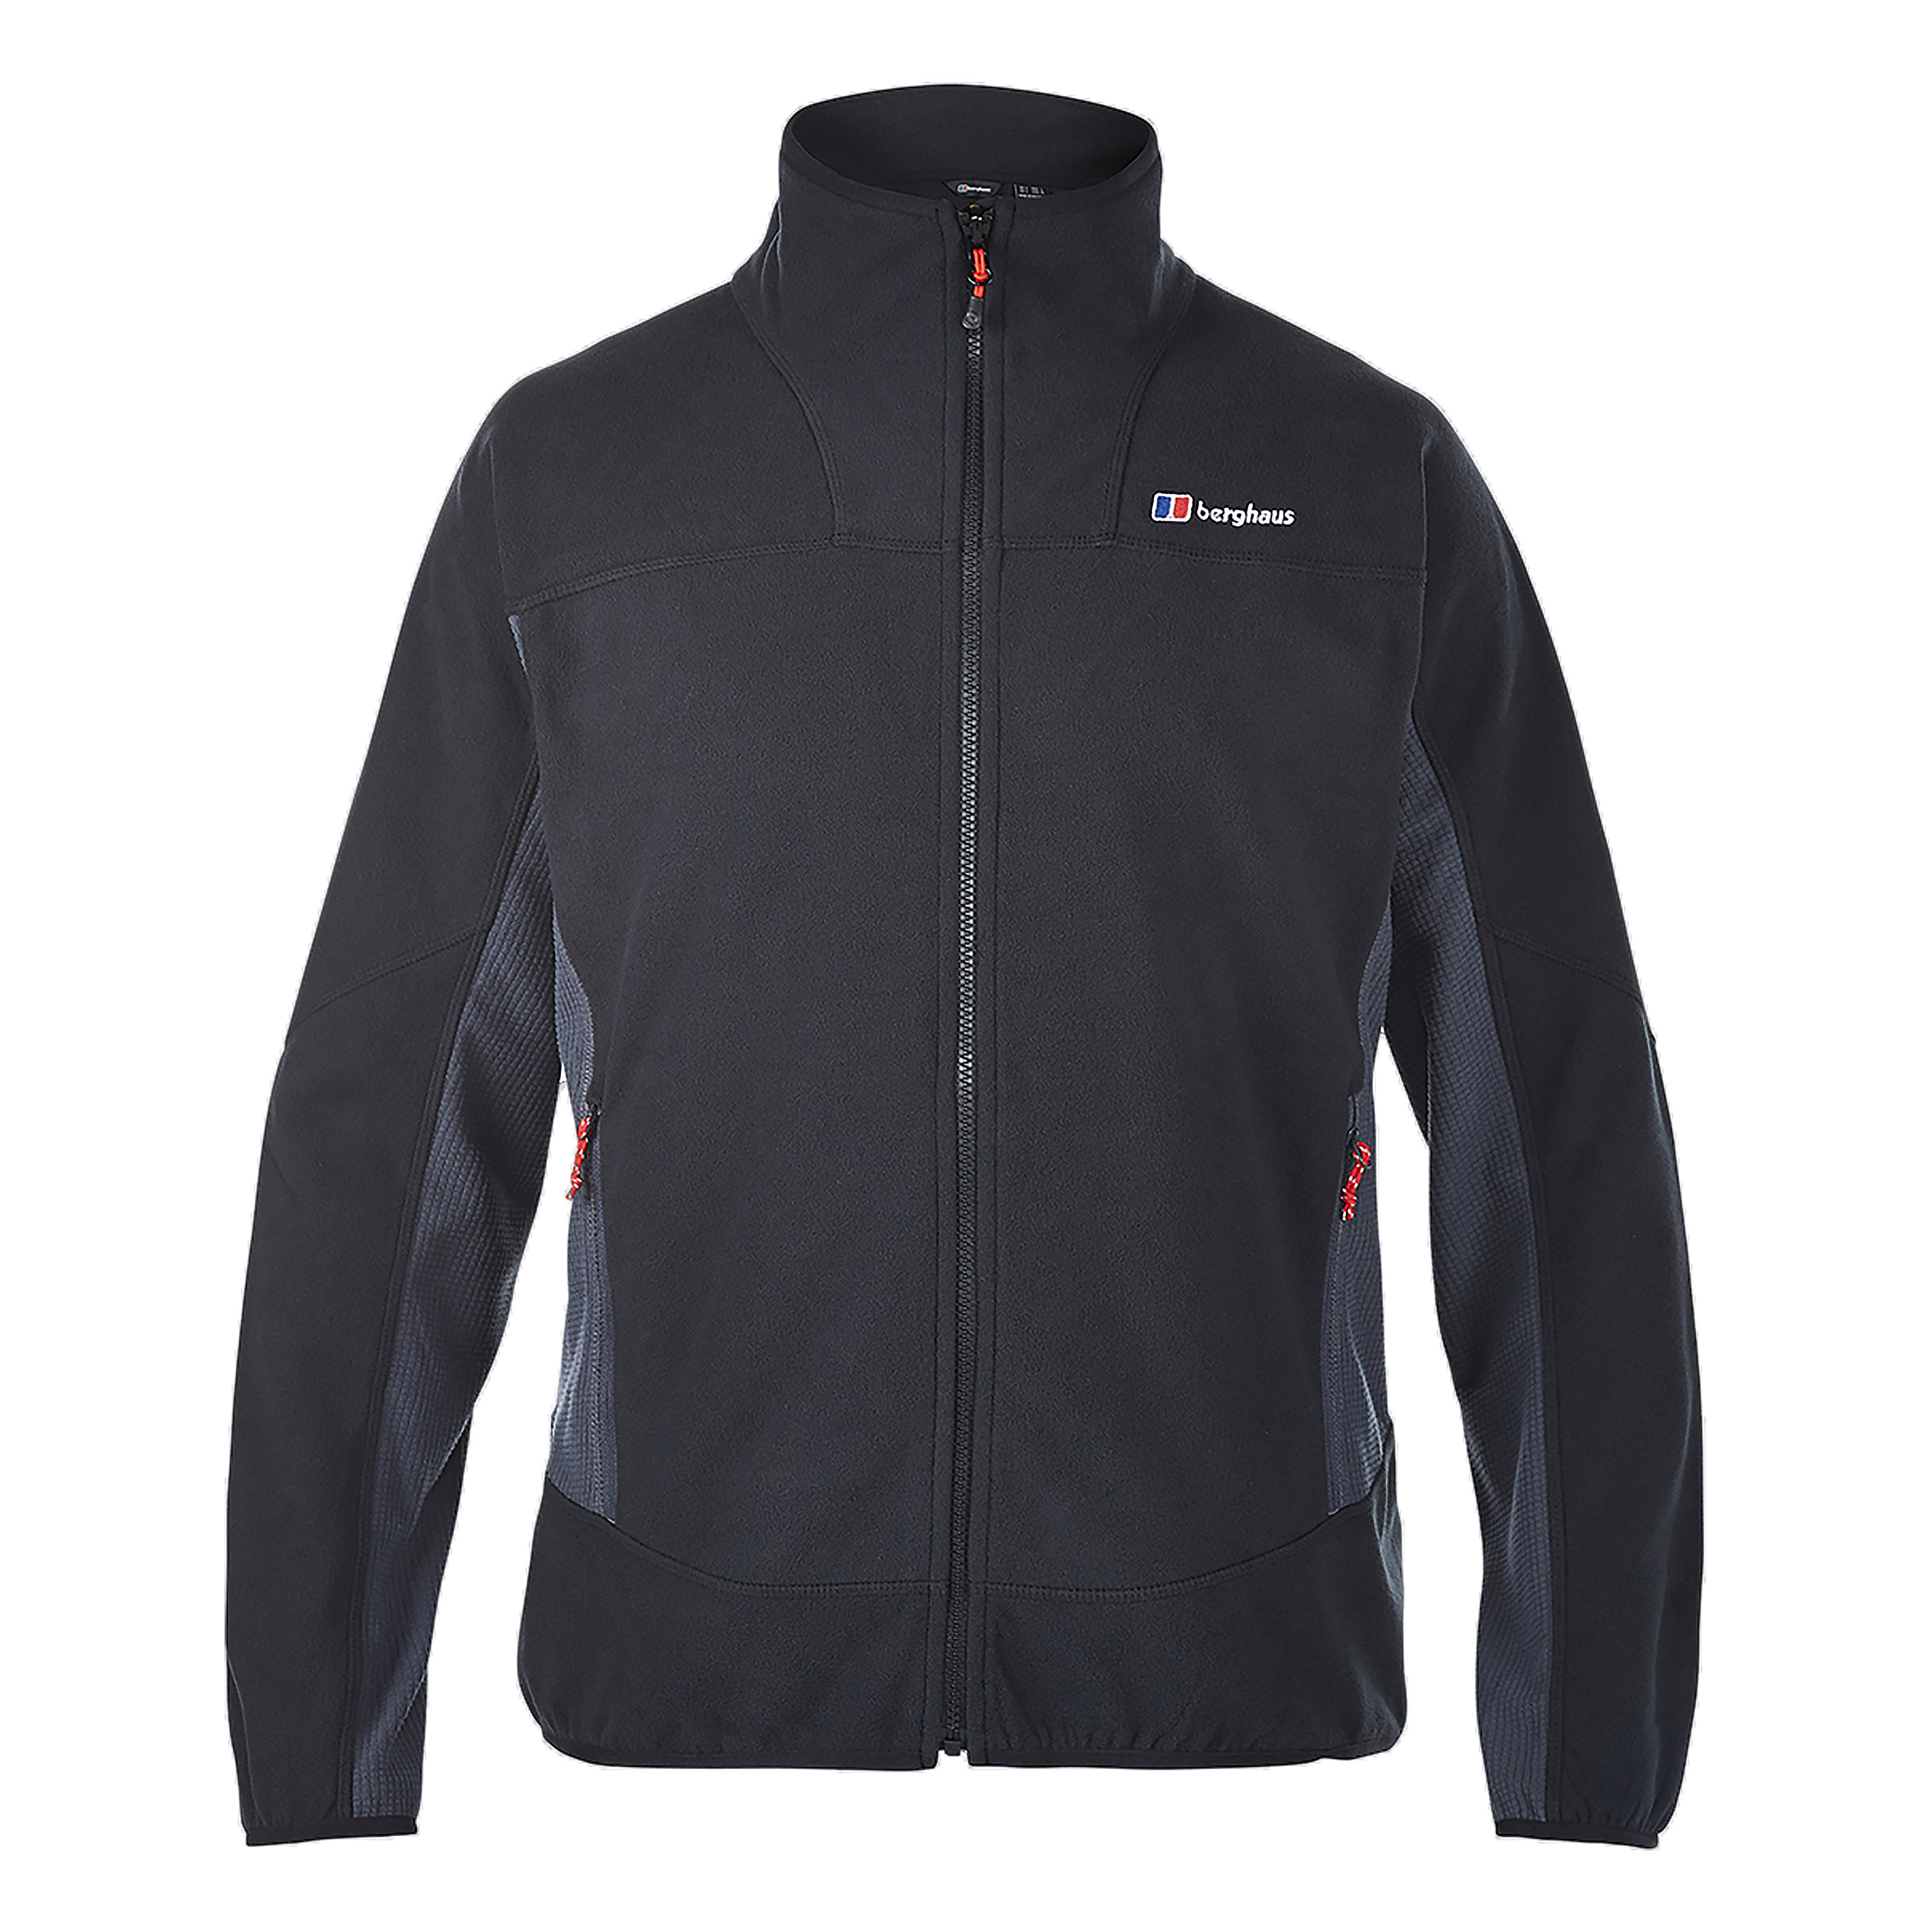 Jacket Berghaus Prism Micro Fleece IA black gray